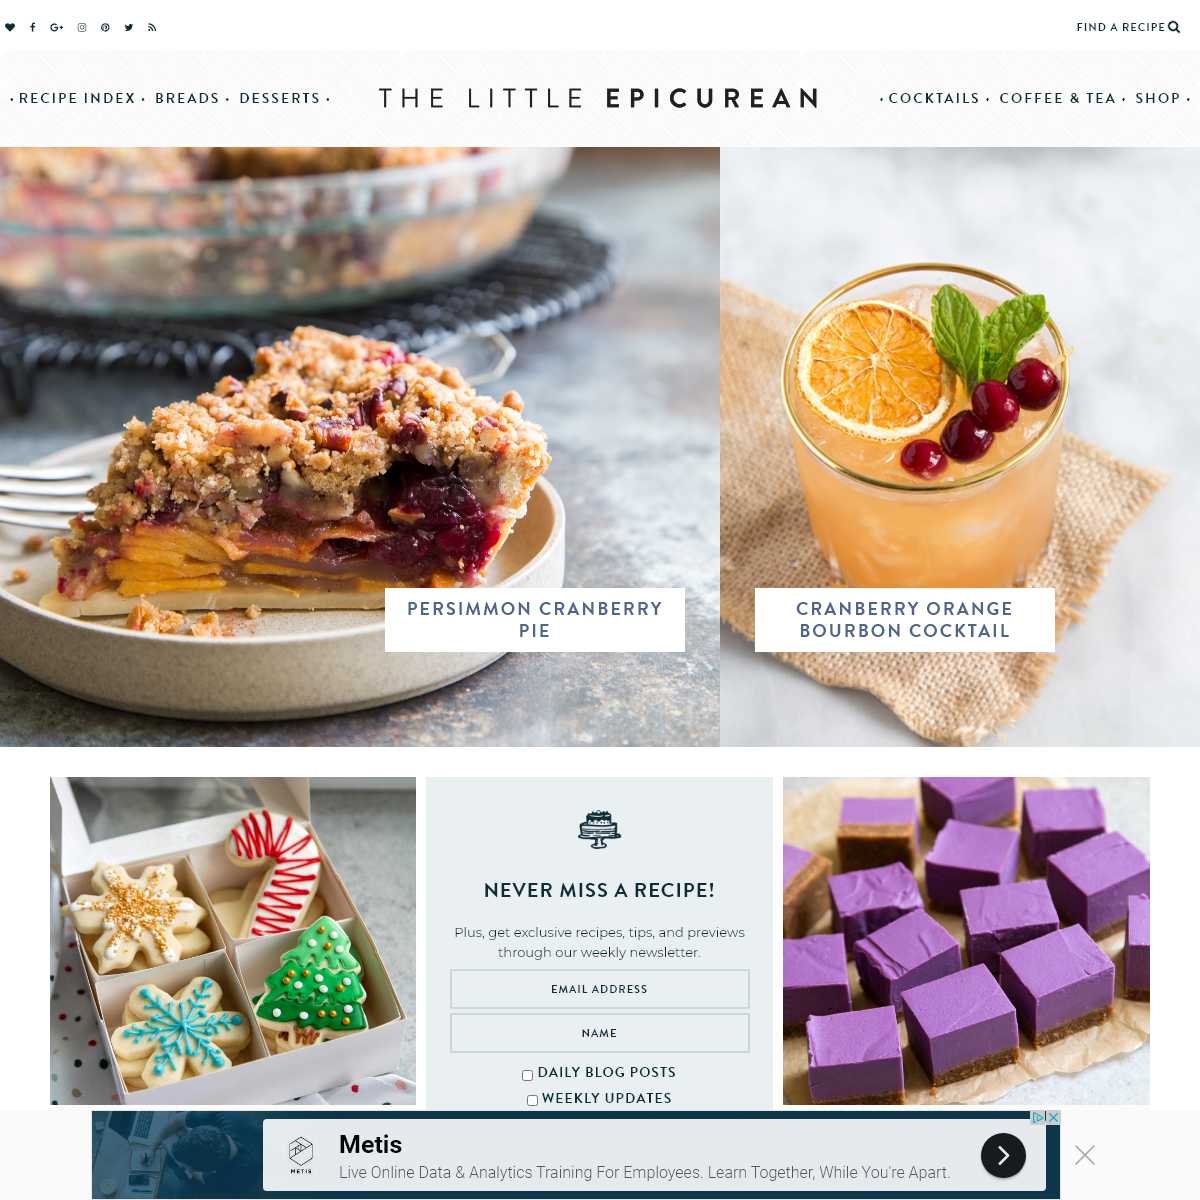 The Little Epicurean - Baking, Dessert, and Cocktail Recipe Blog